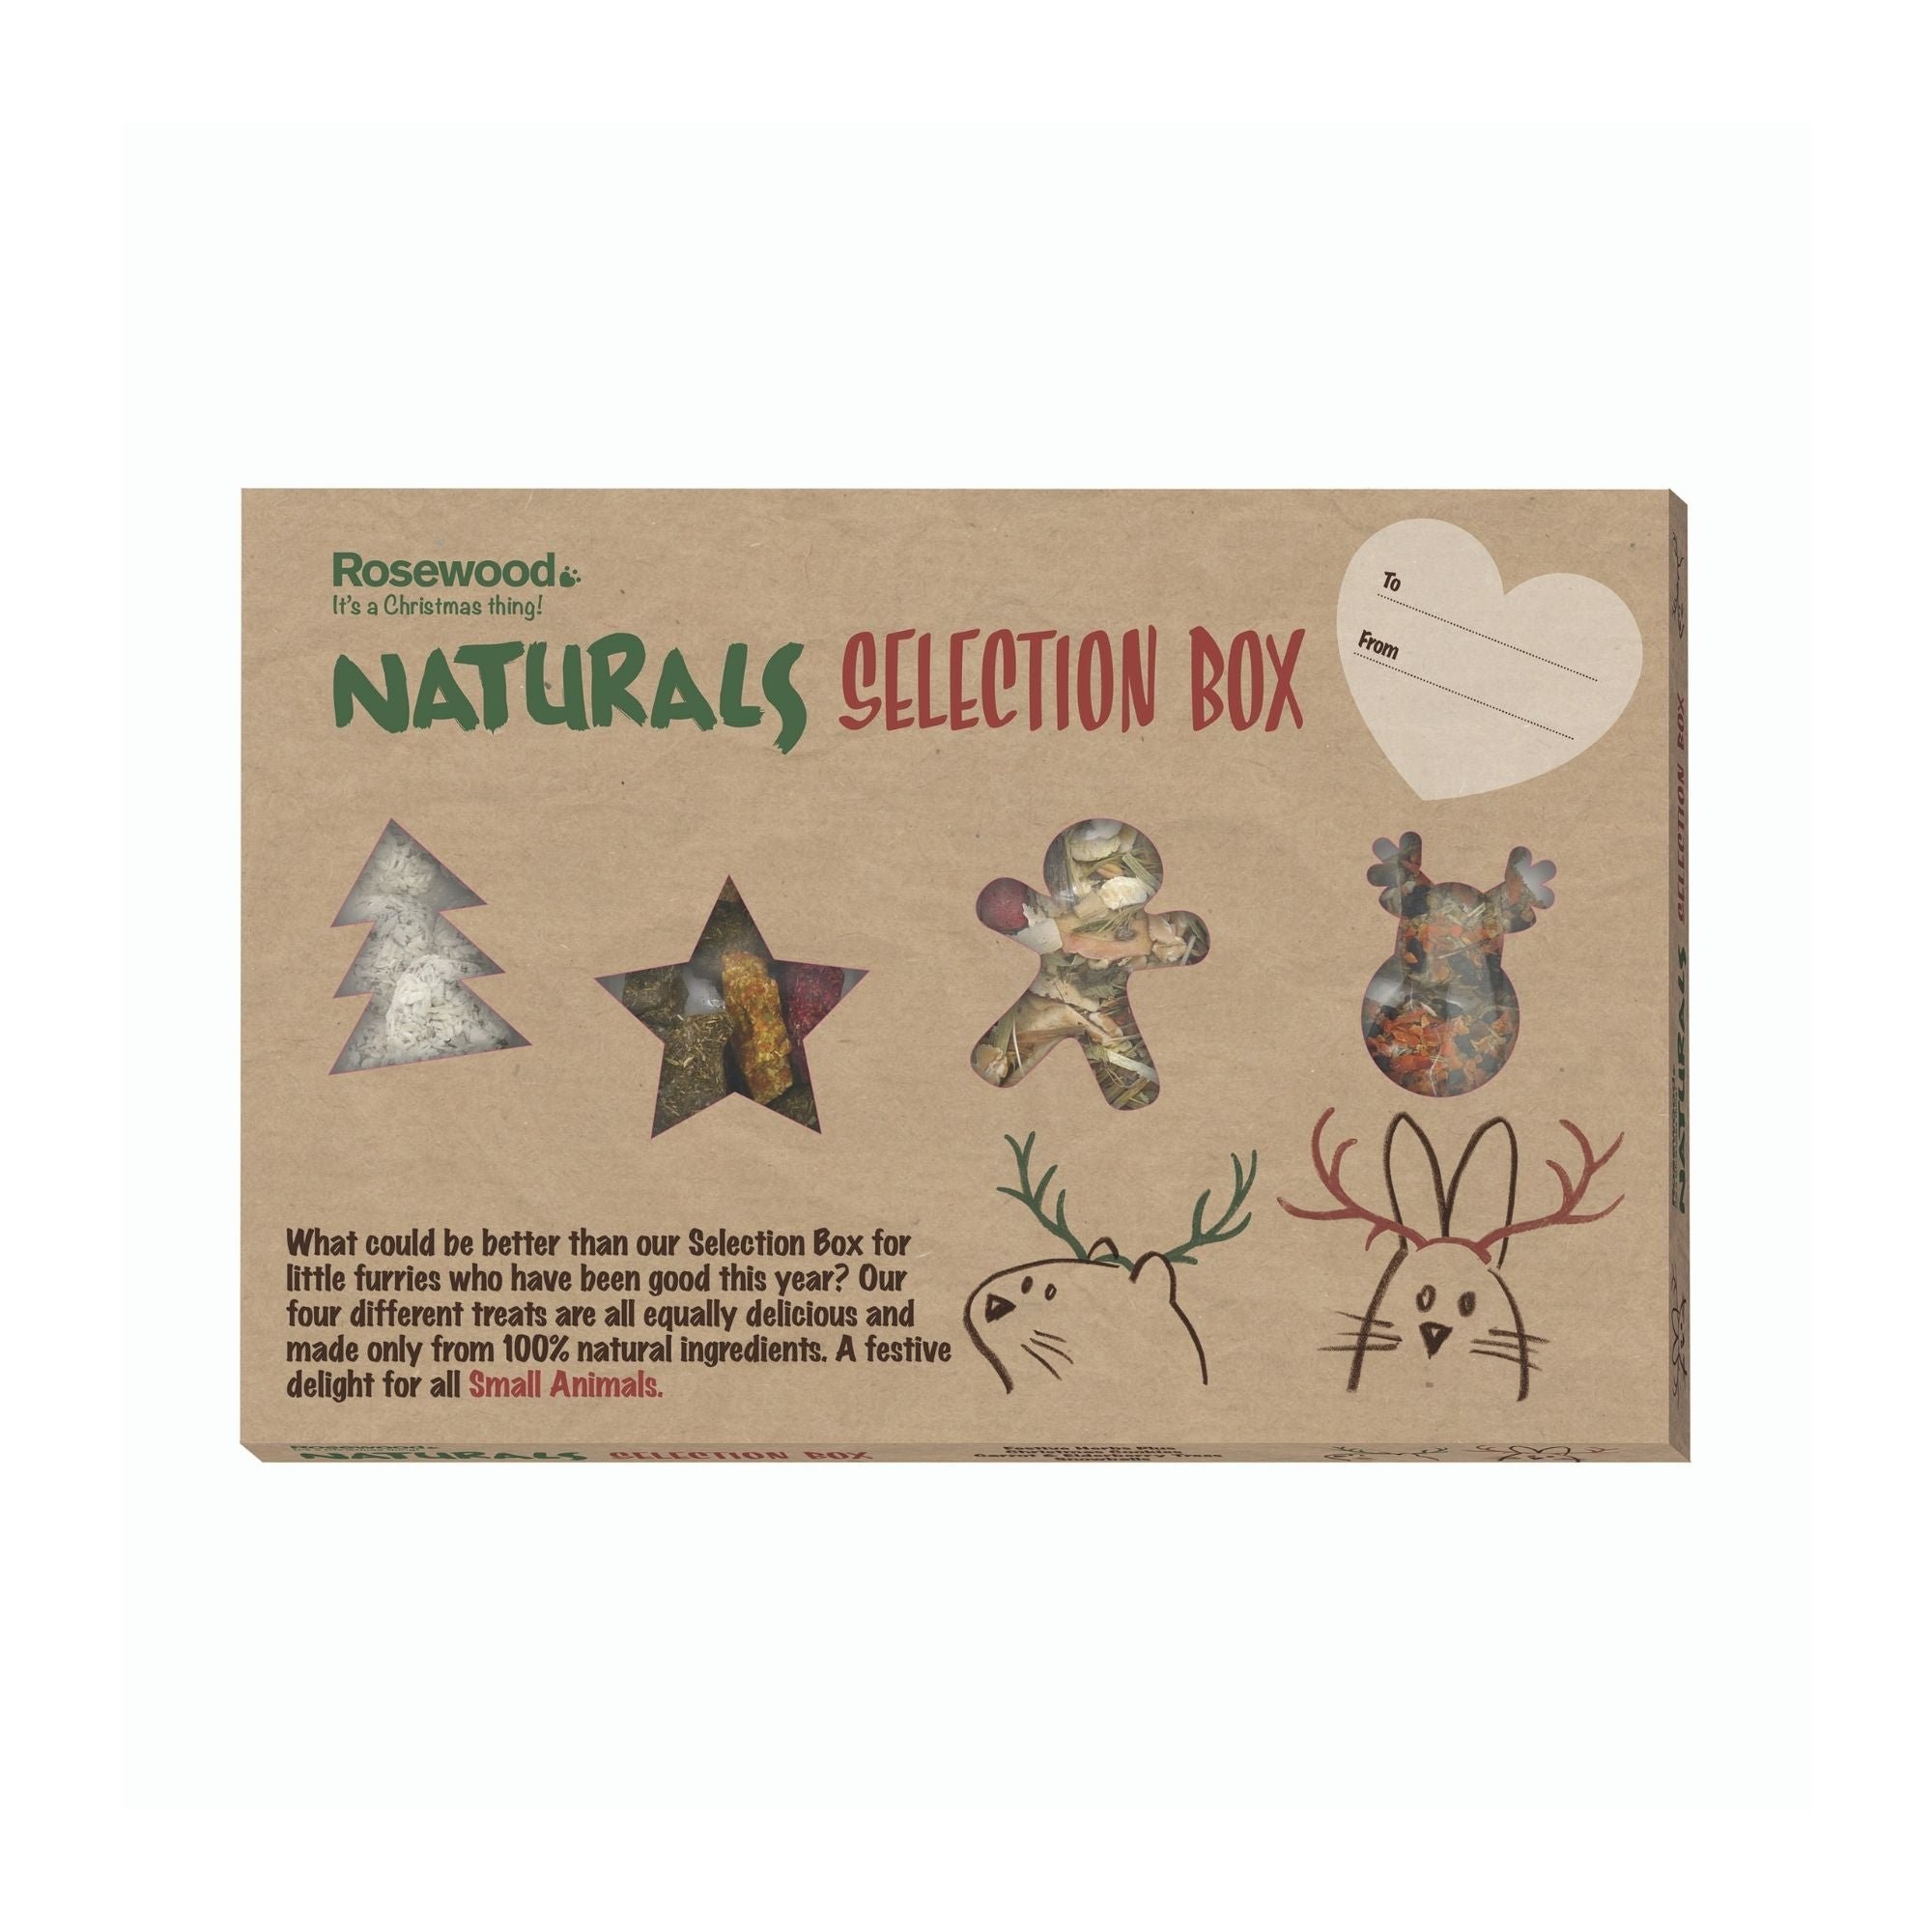 Rosewood Naturals Selection Box Christmas Gift For Rabbits | Barks & Bunnies